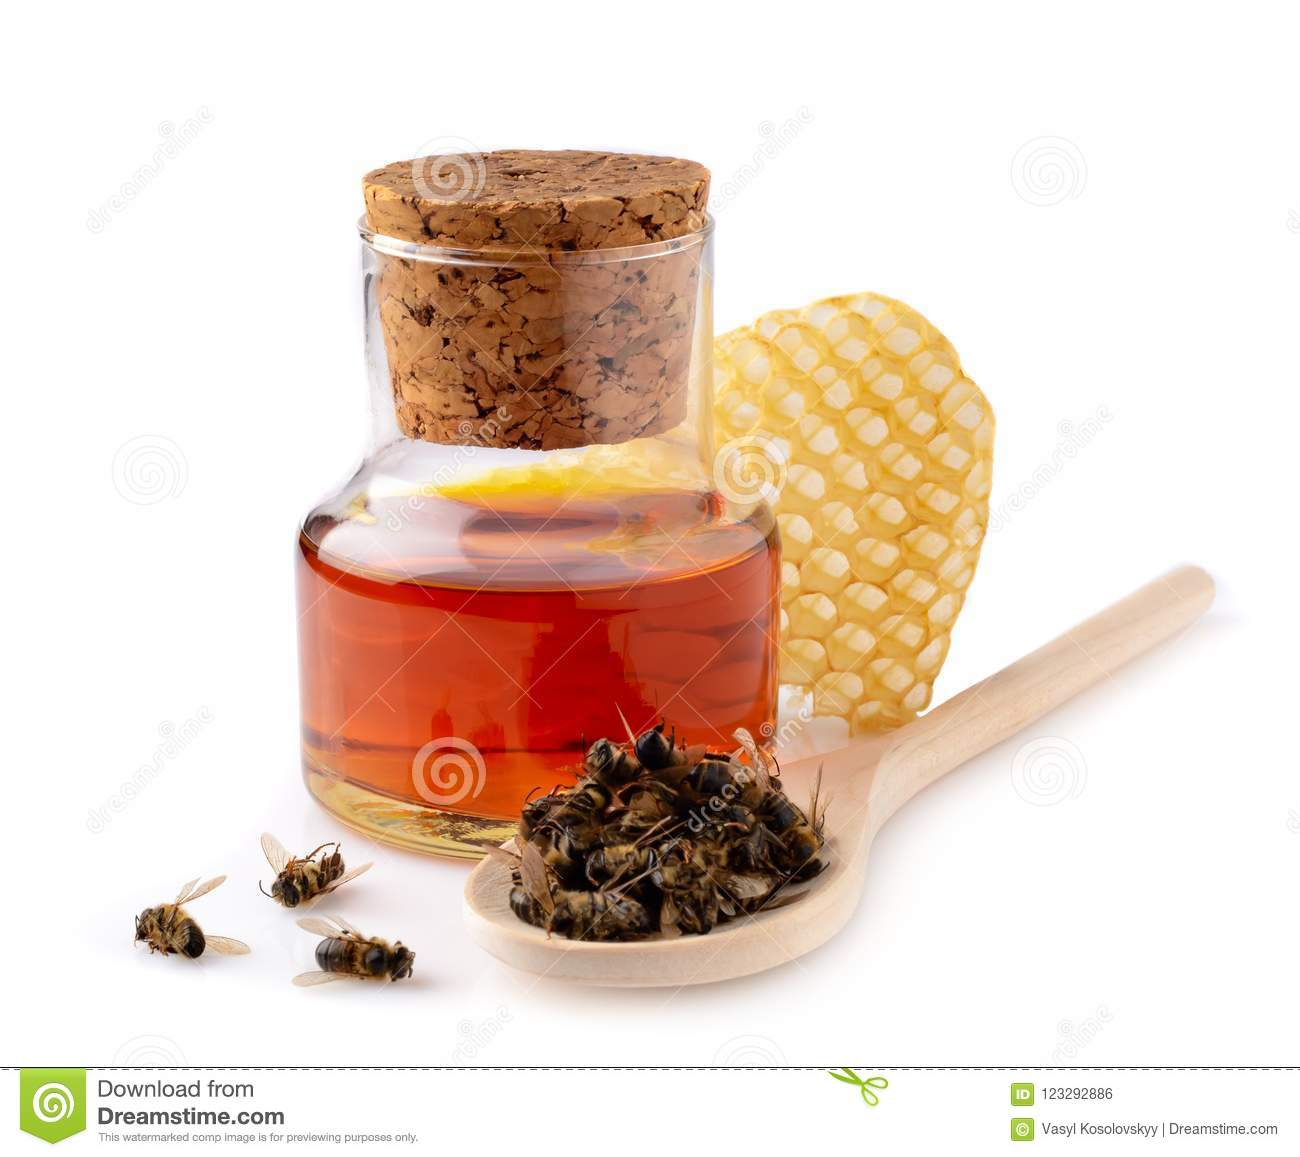 A bottle of tinctures on dead bees and dead bees in a wooden spoon. Treatment with dead bees. Dead bees do not buzz but